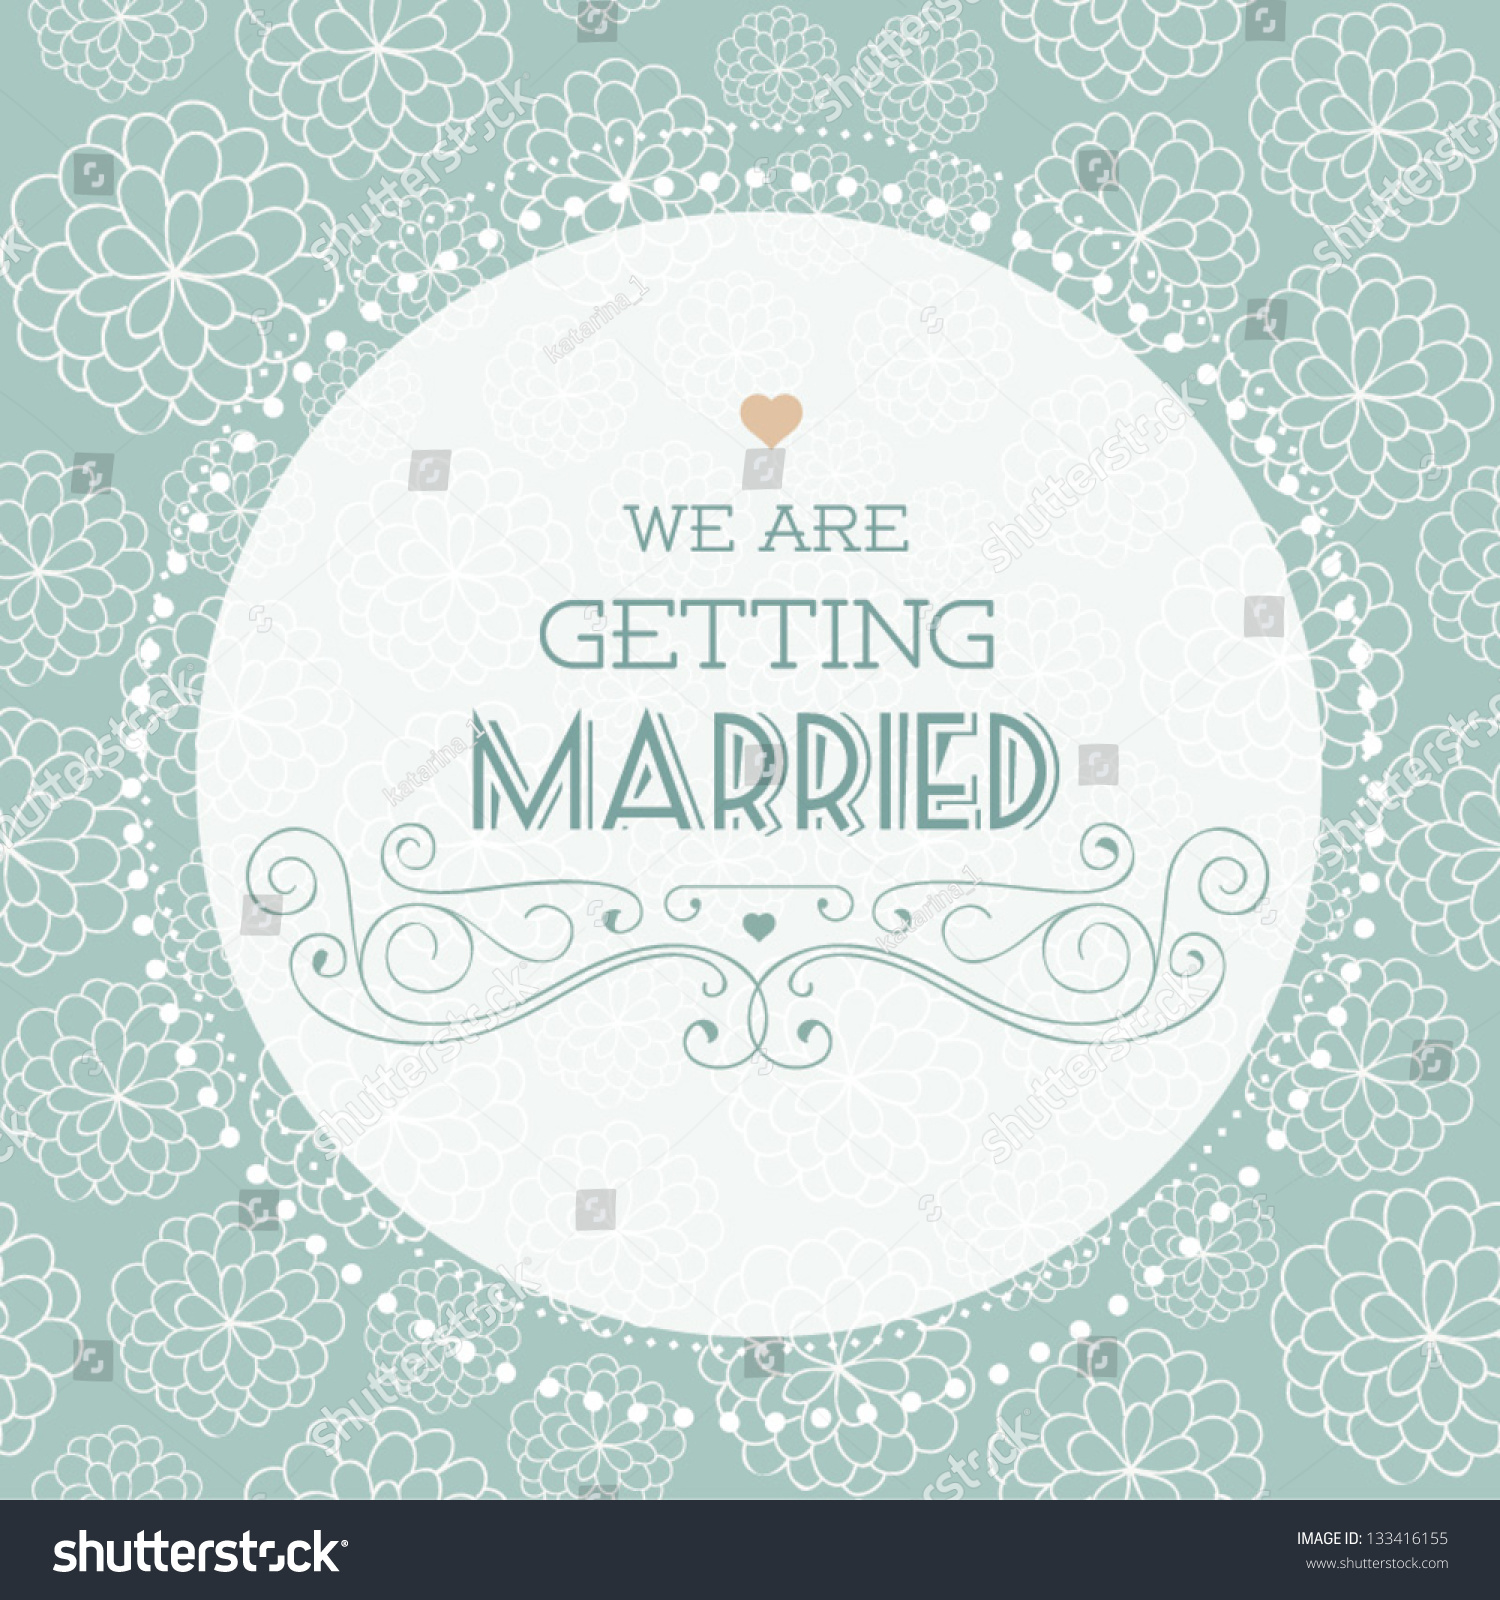 Vector illustration wedding invitation card seamless stock vector hd wedding invitation card seamless floral pattern can be used for wallpaper stopboris Image collections